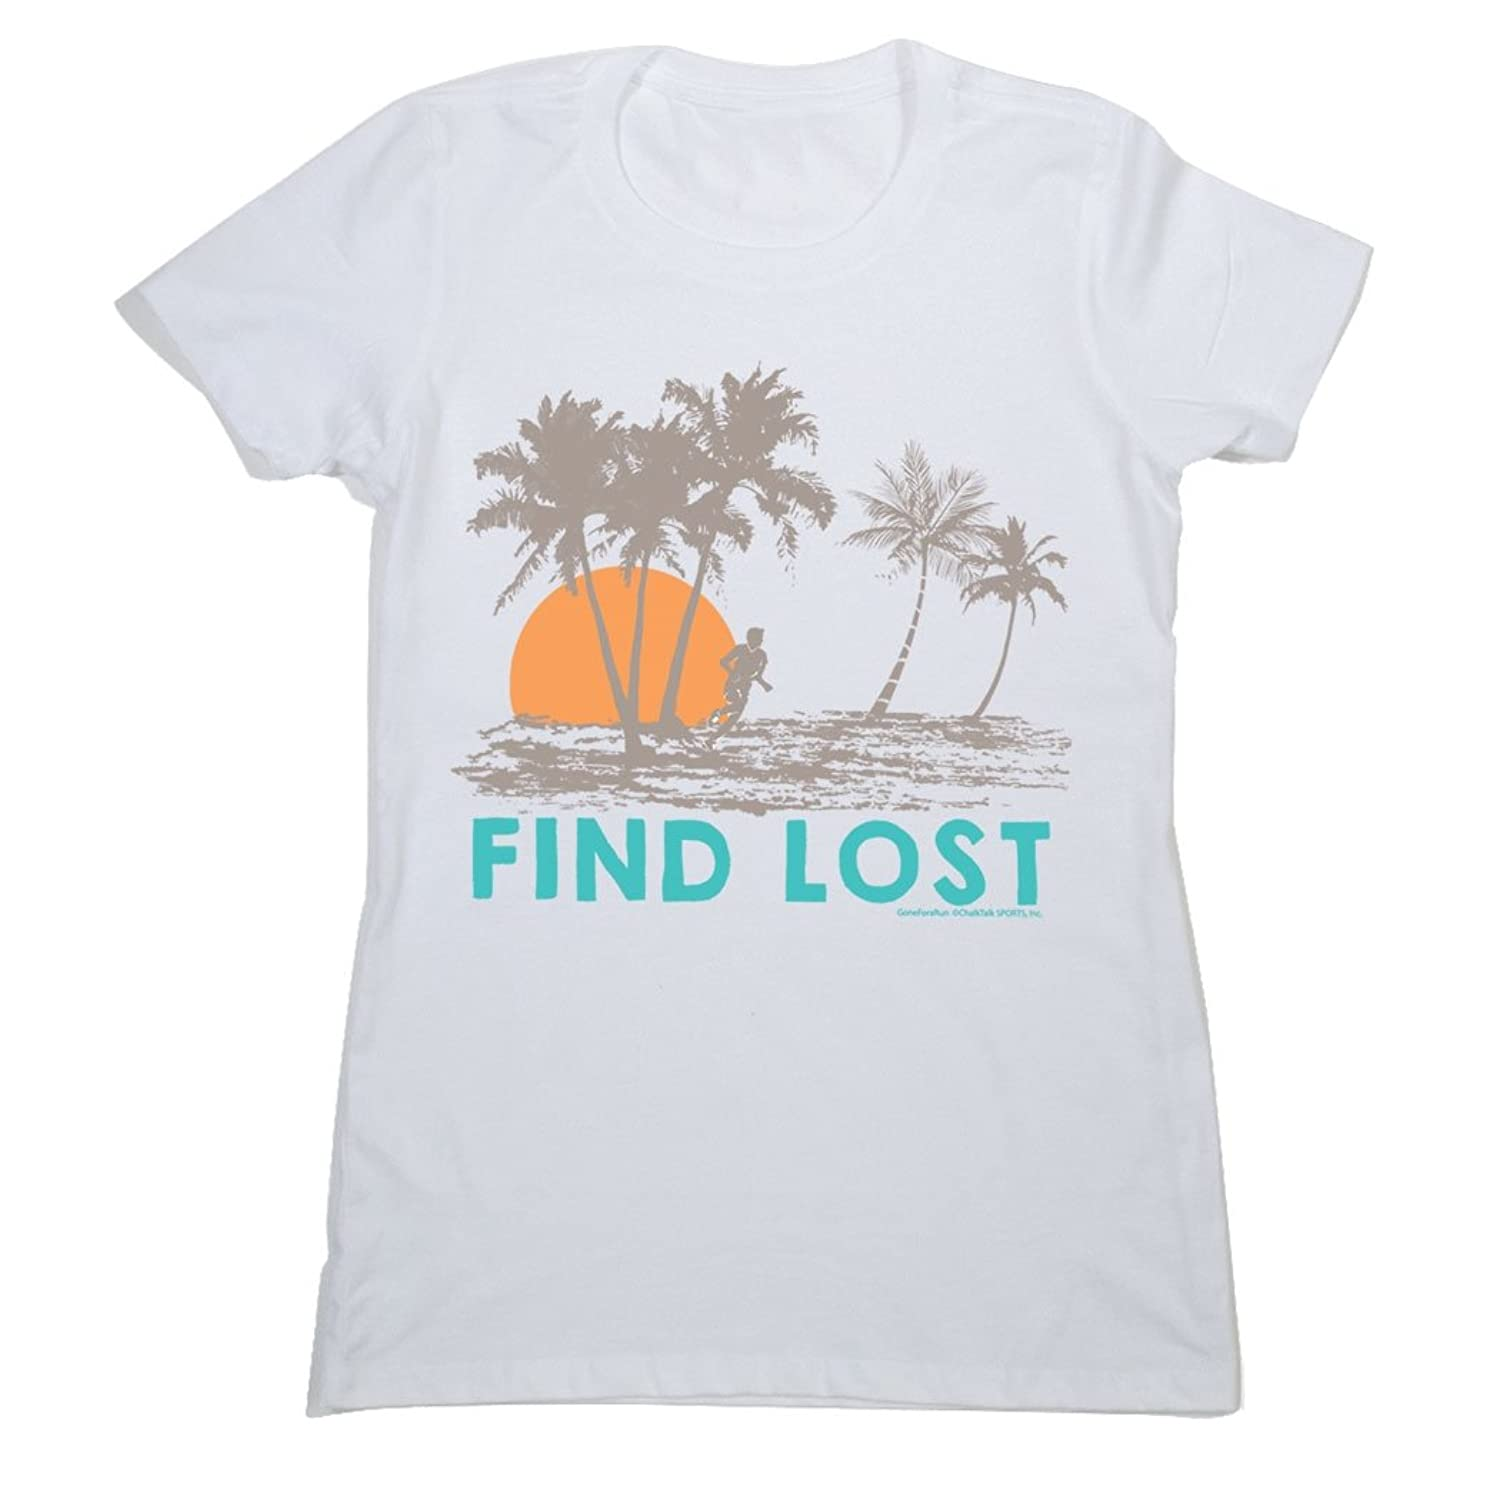 Women's Everyday Runner's Tee Run Club Find Lost